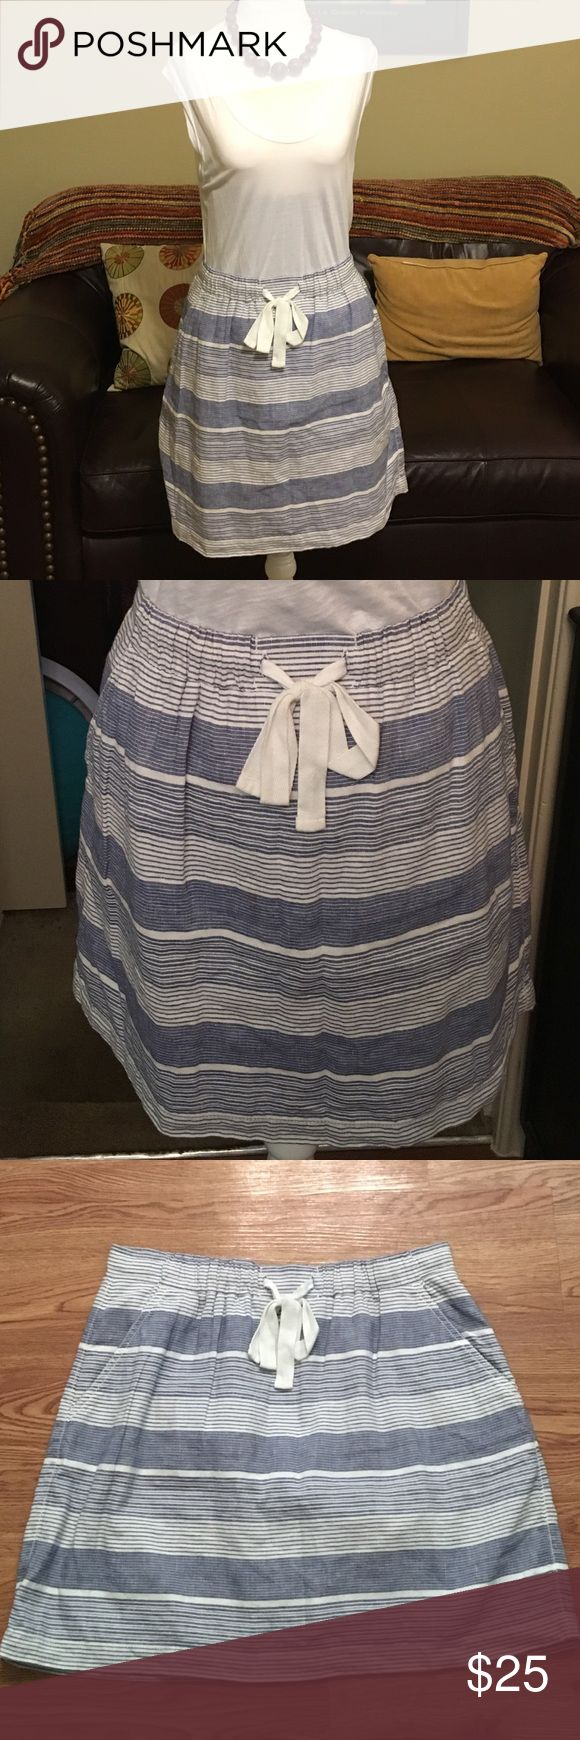 """Gap Striped Skirt Skirt has elastic and drawstring waist and side pockets. Dress up or down with a variety of tops. 55% linen and 45% cotton. Fully lined in 100% cotton. Waist is 15""""laying flat and length is 18.5"""".  Smoke free home. GAP Skirts A-Line or Full"""